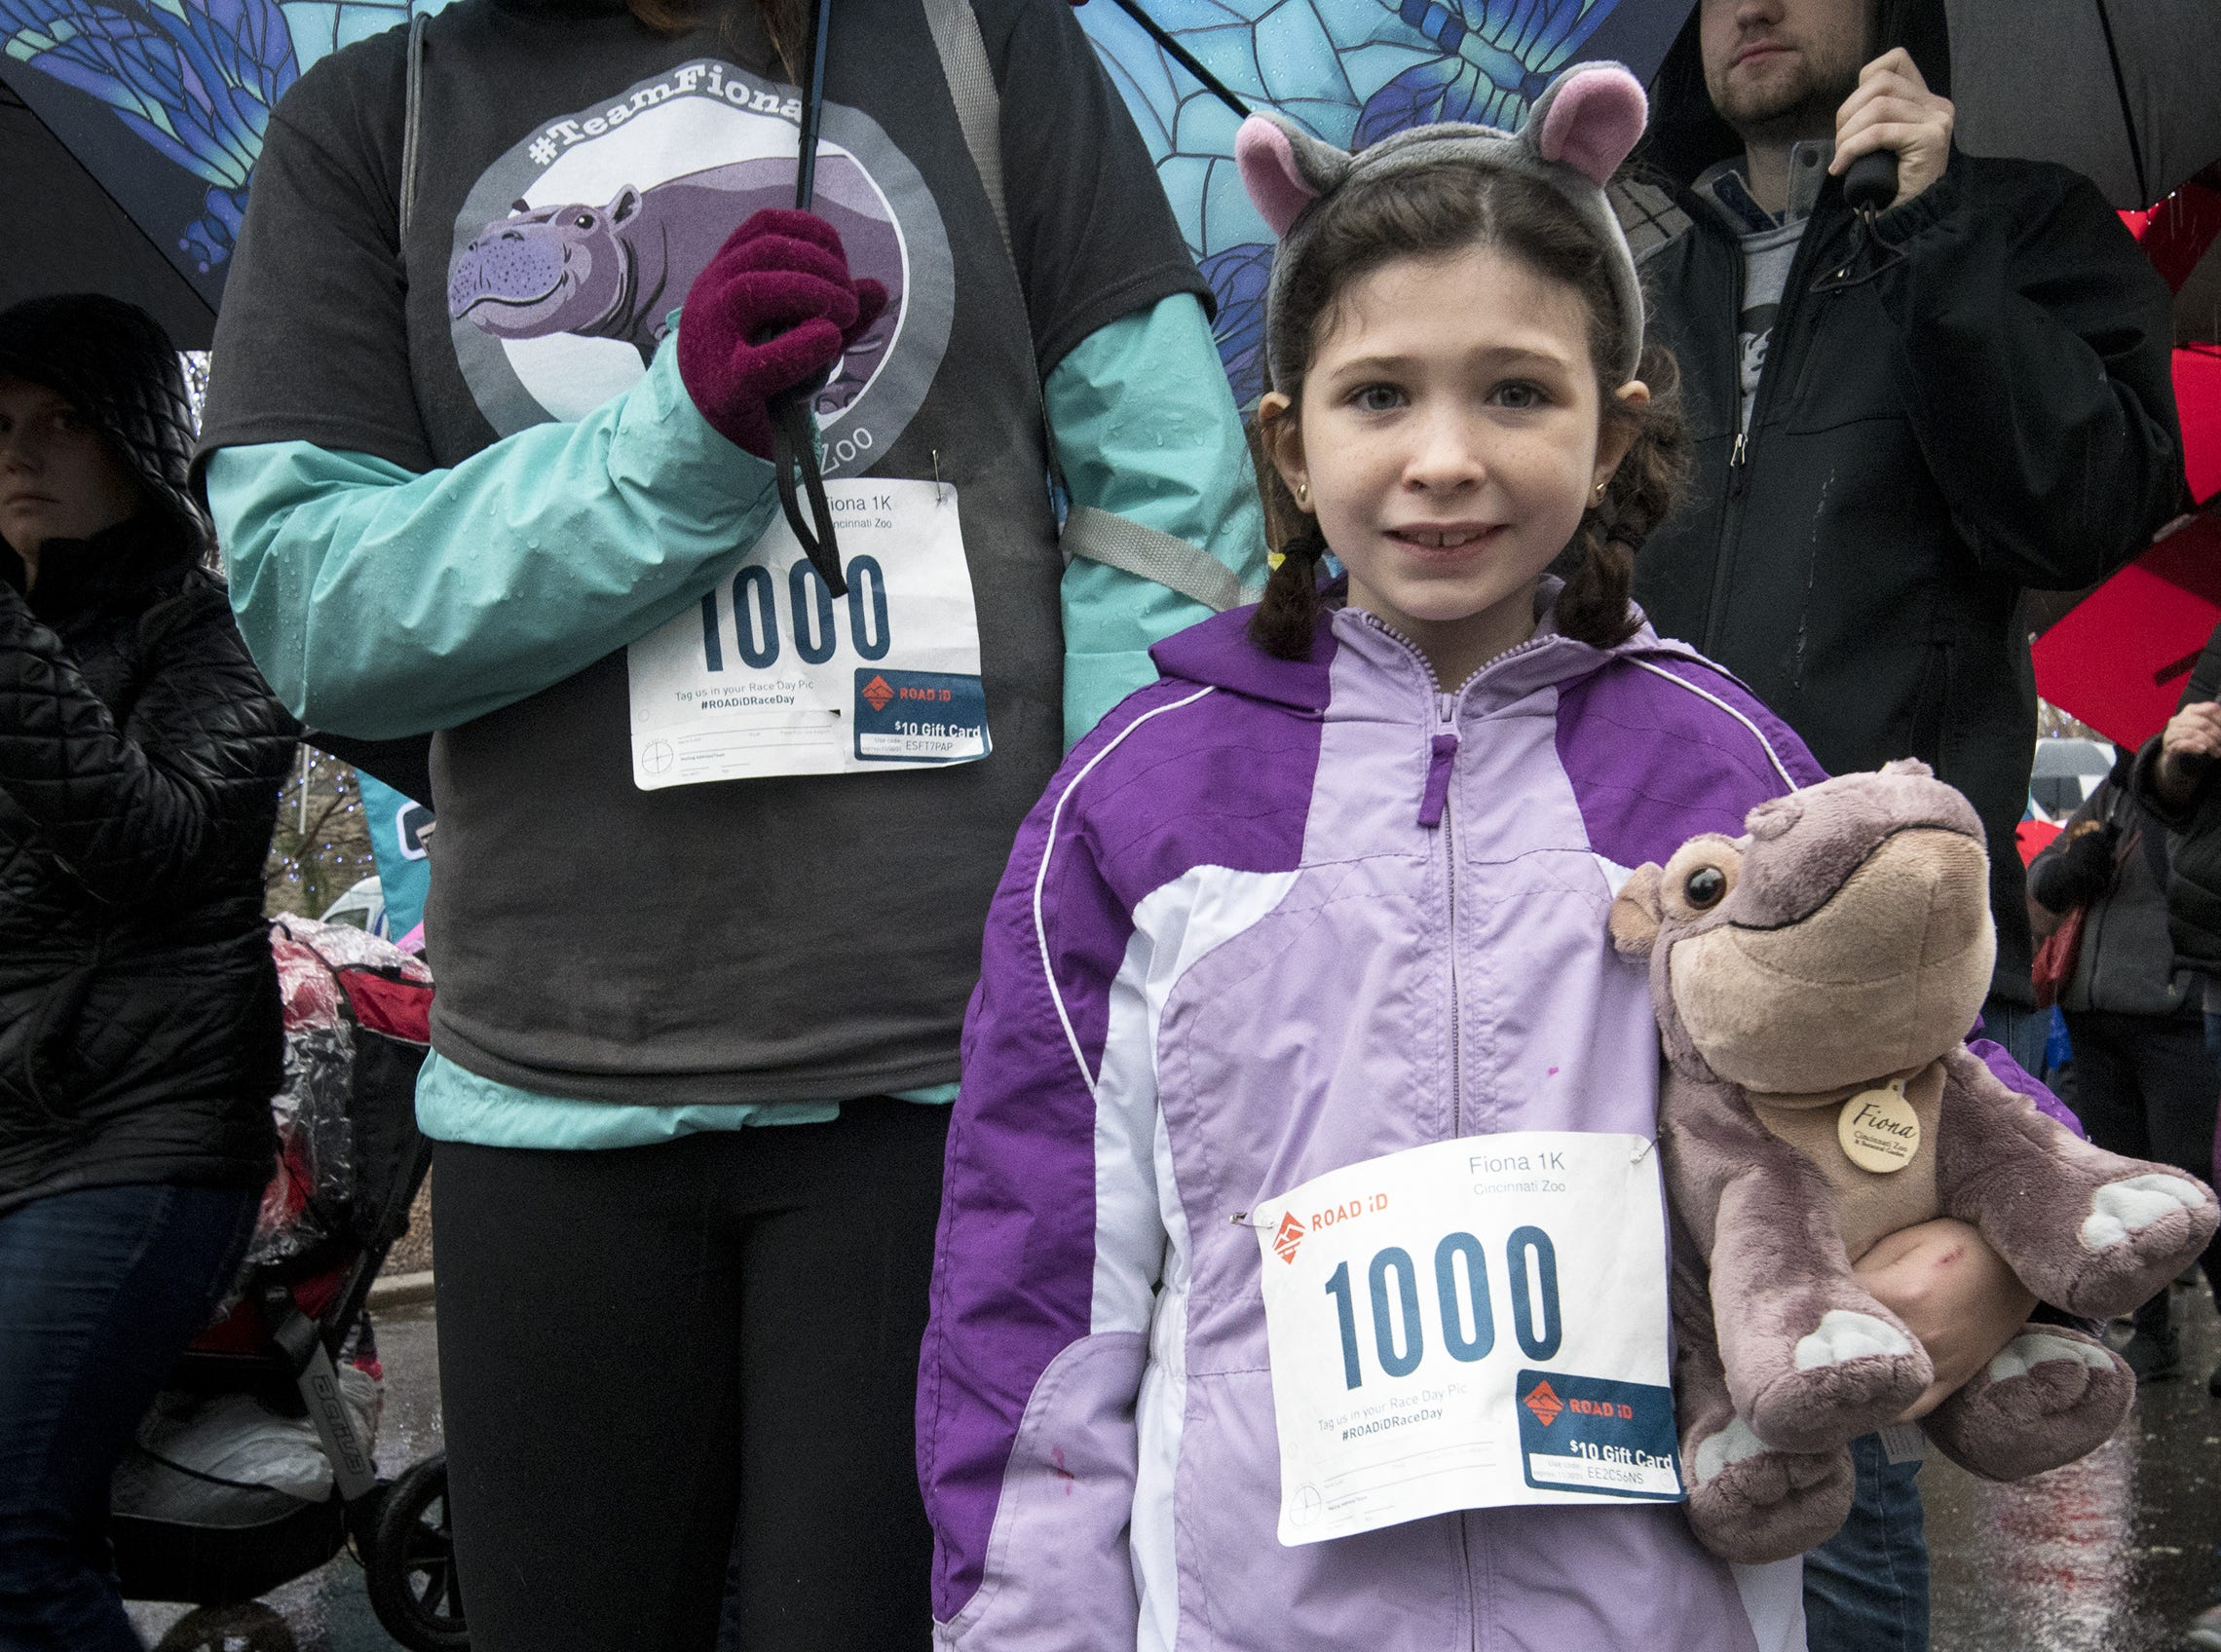 Bree Wieger of Lexington has hippo ears to match her stuffed Fiona toy at the Cincinnati Zoo's Fiona 1k walk in honor of the beloved hippo's 1,000-pound milestone Saturday, December 1, 2018 in Cincinnati, Ohio.